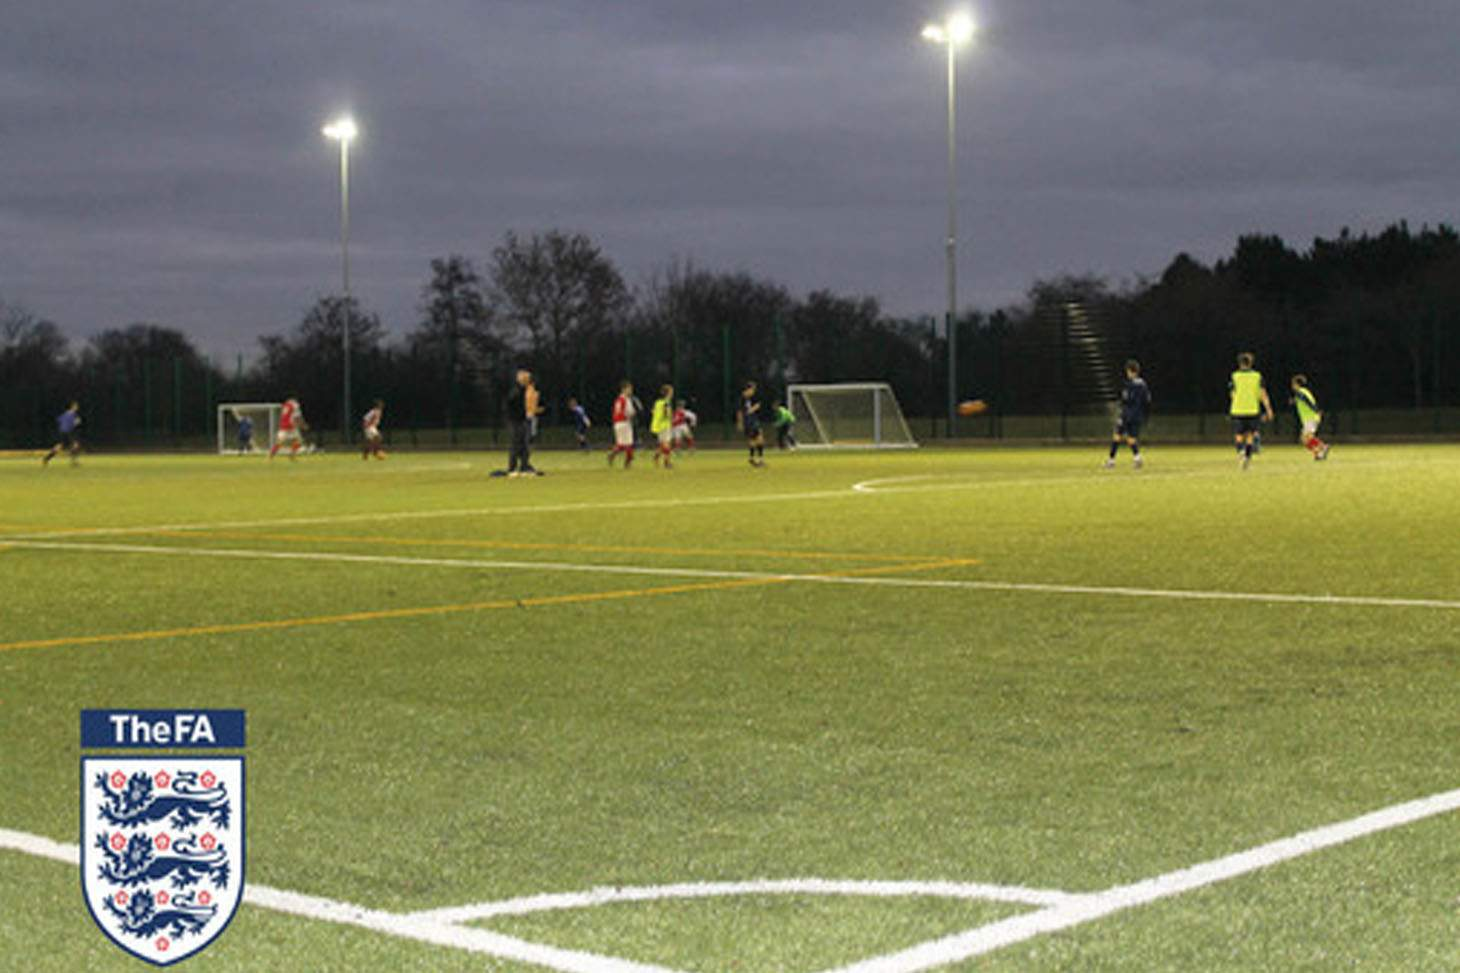 Bishop Rawstorne CE Academy 11 a side | 3G Astroturf football pitch